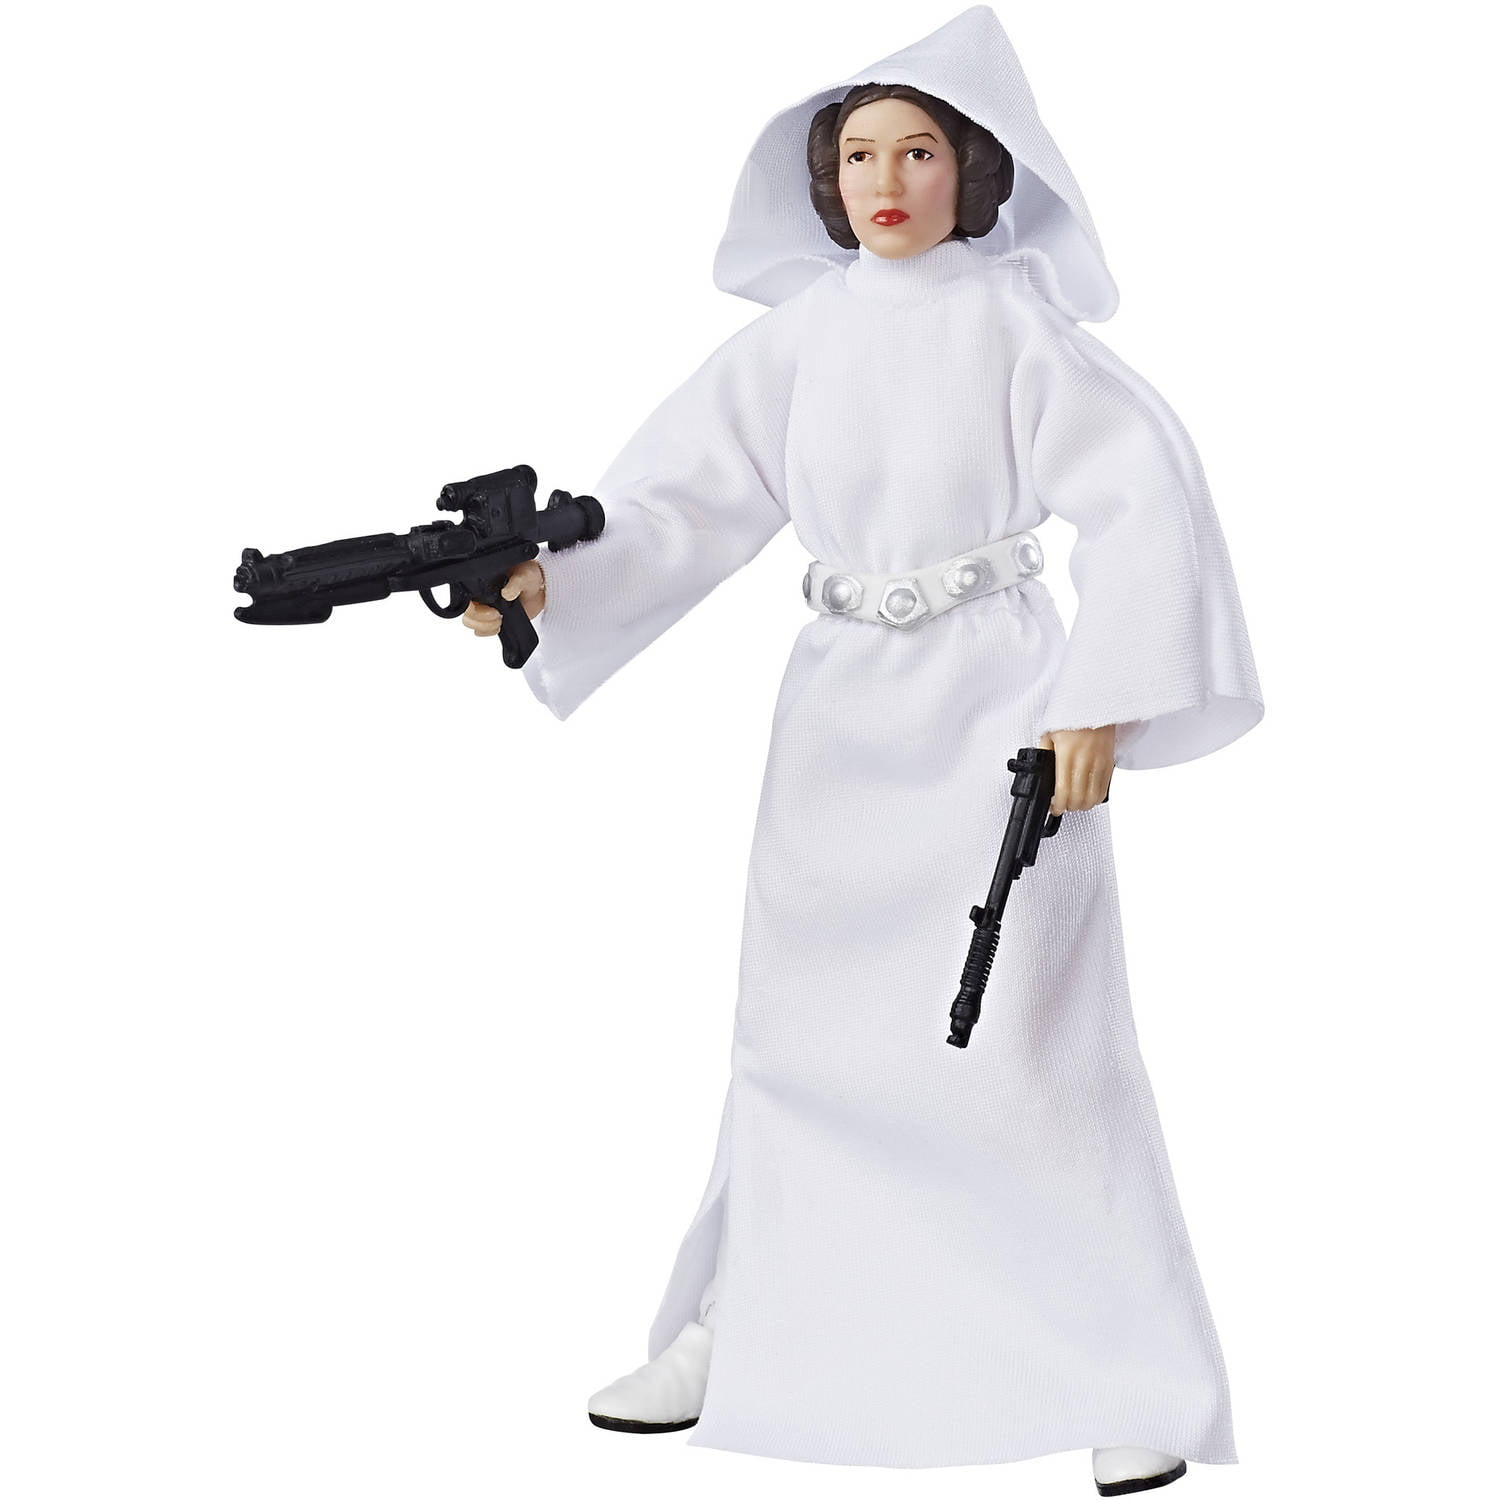 "Star Wars The Black Series 40th Anniversary Princess Leia Organa 6"" Action Figure by Hasbro"